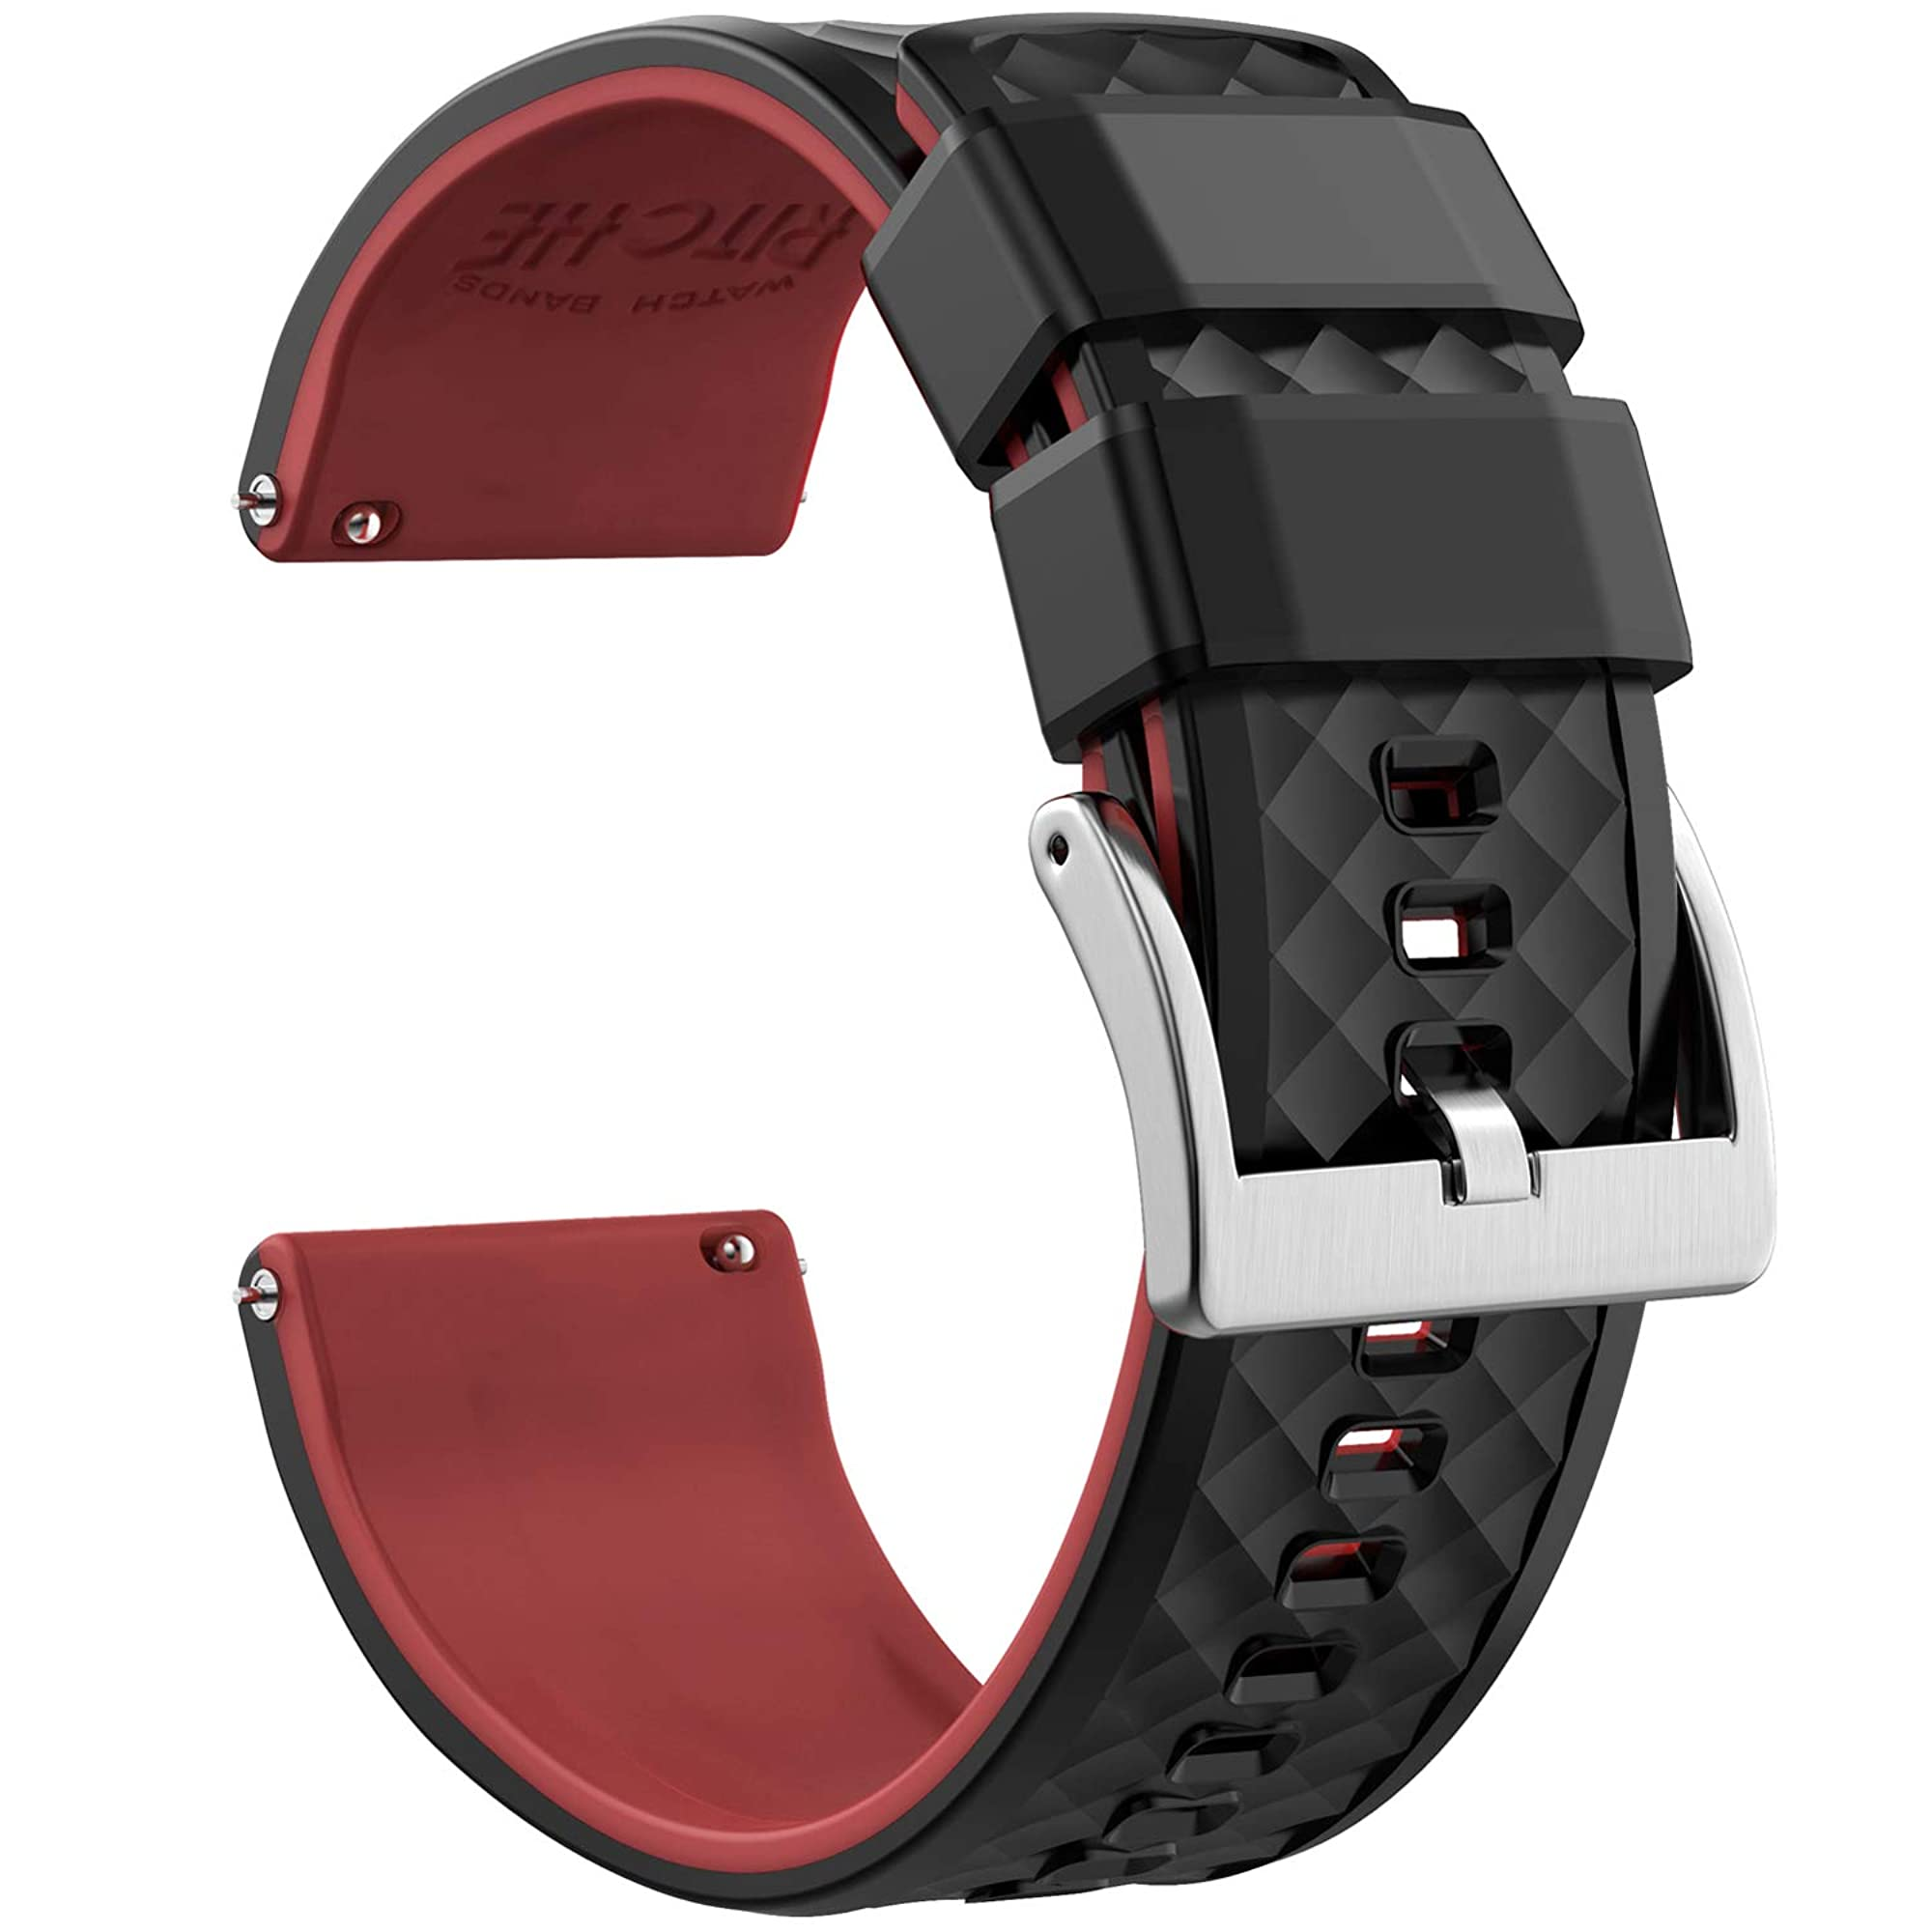 Watch Bands For Women And Men